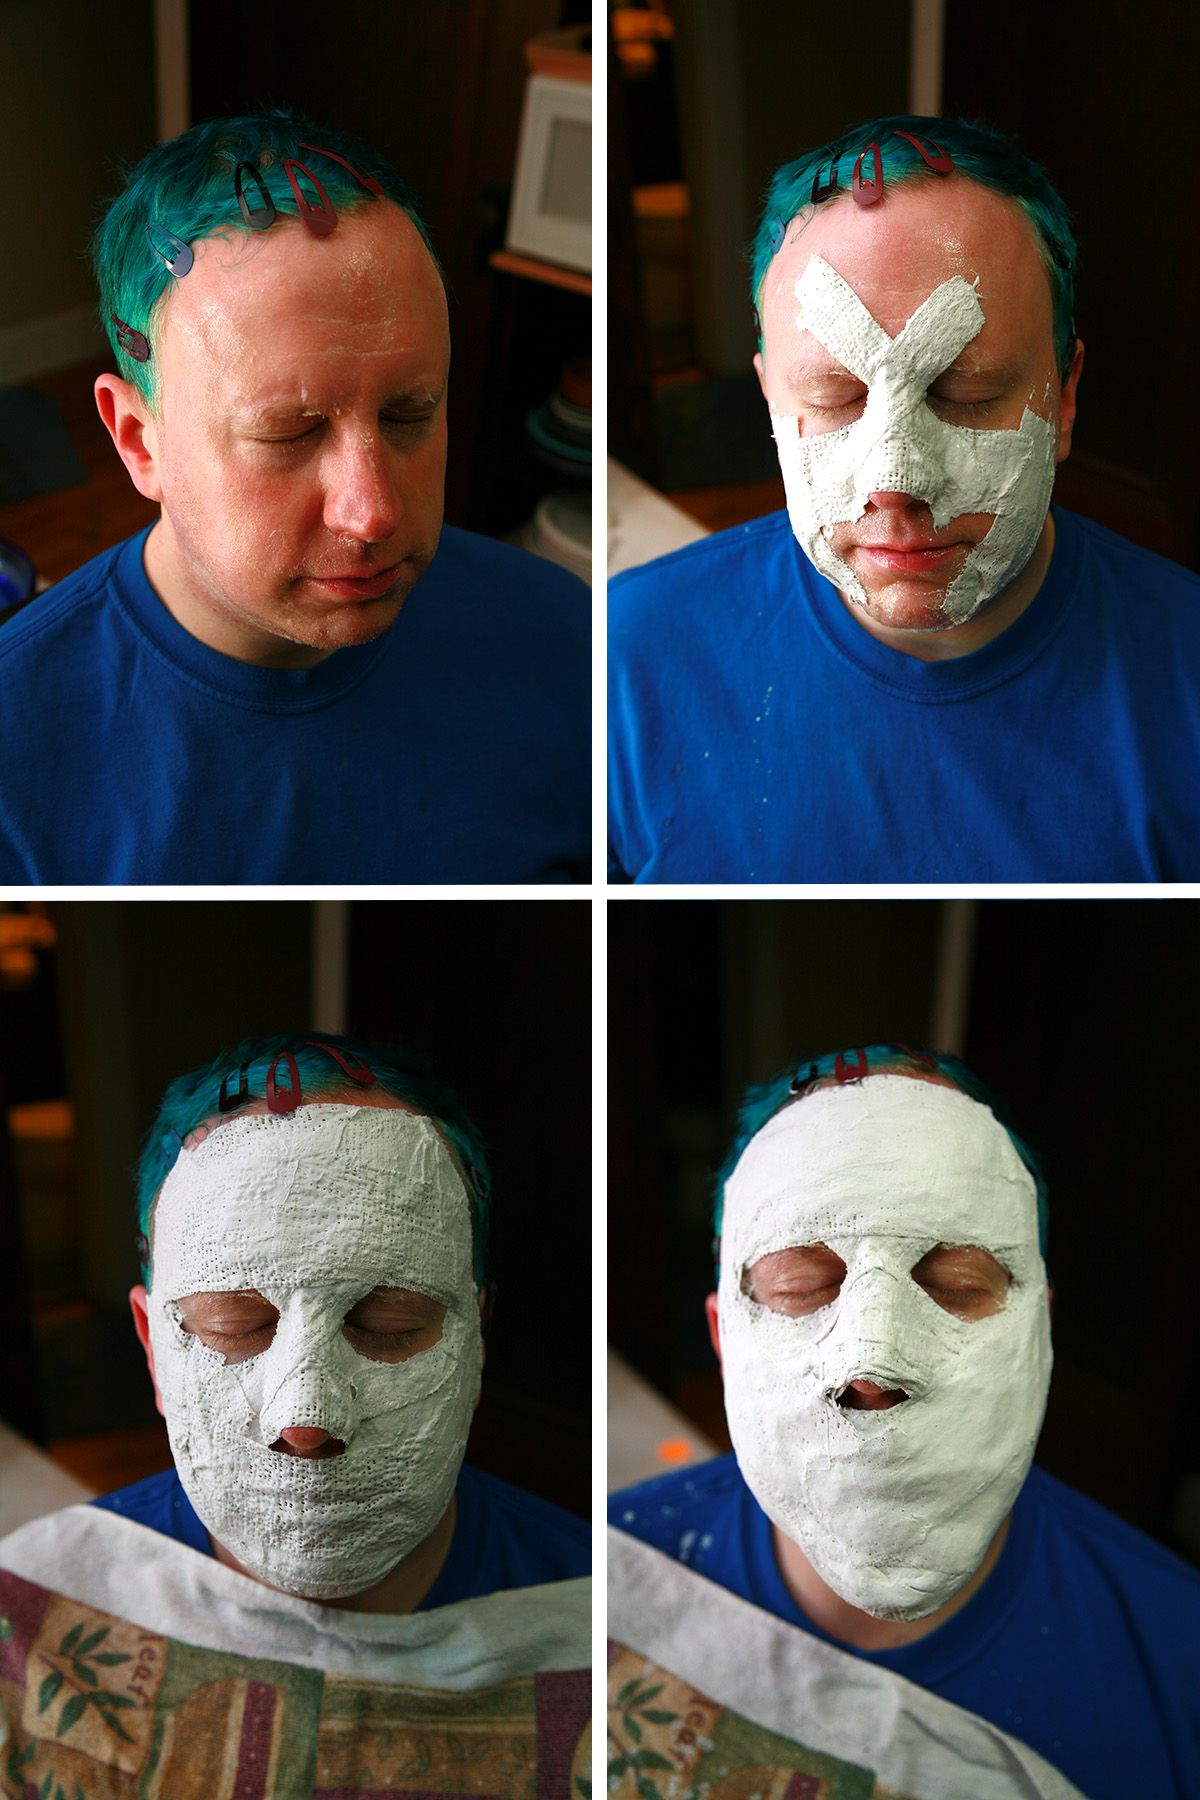 A 4 part image showing a man having plaster applied to his face to make a mask.